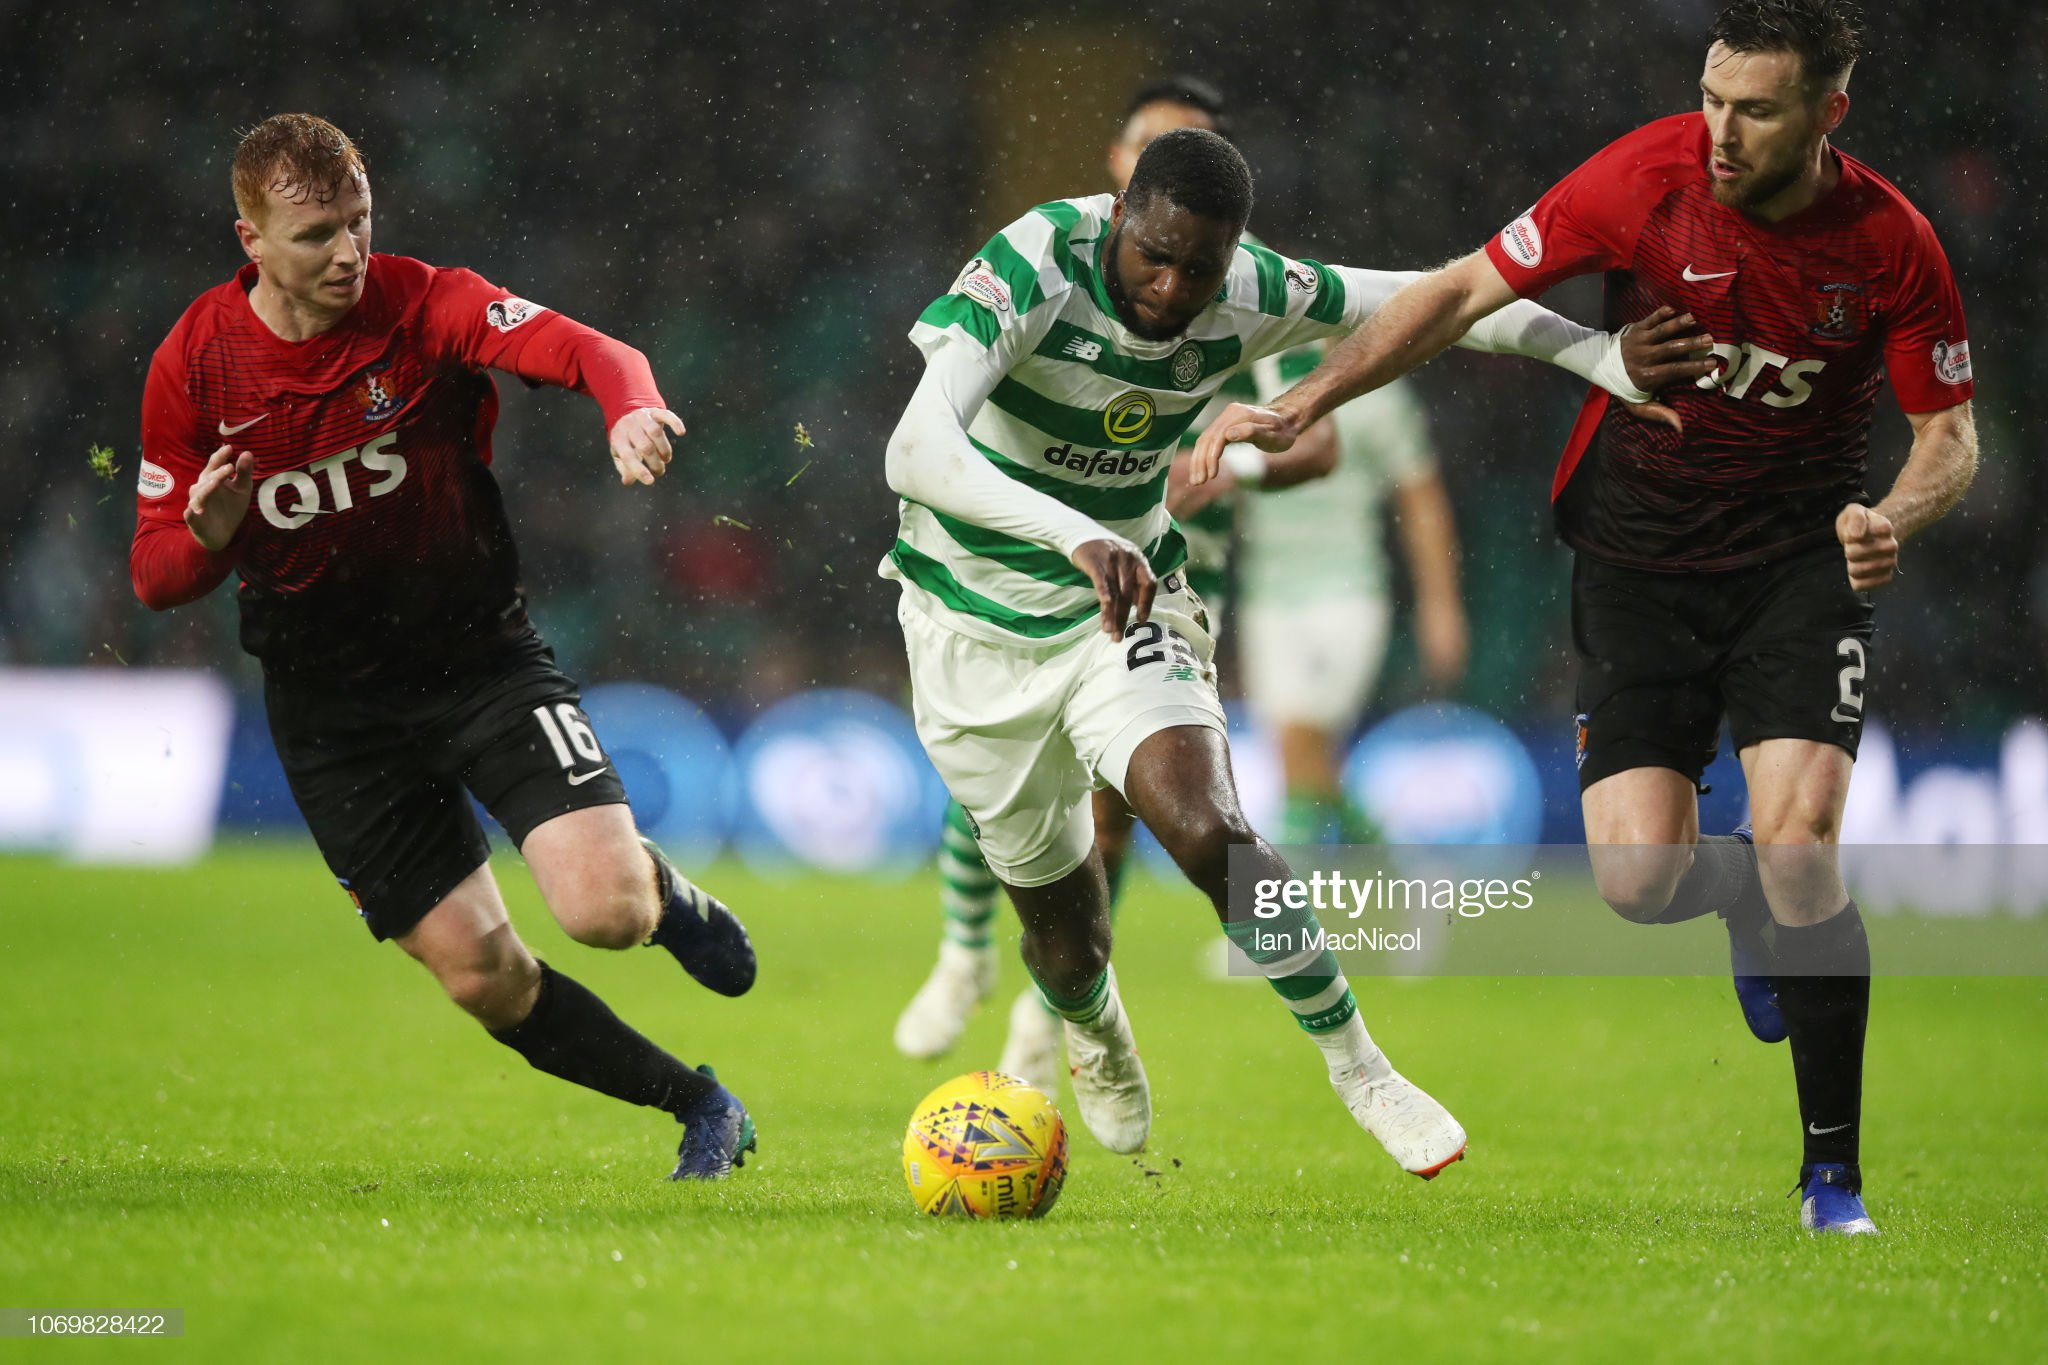 Kilmarnock vs Celtic Preview, prediction and odds